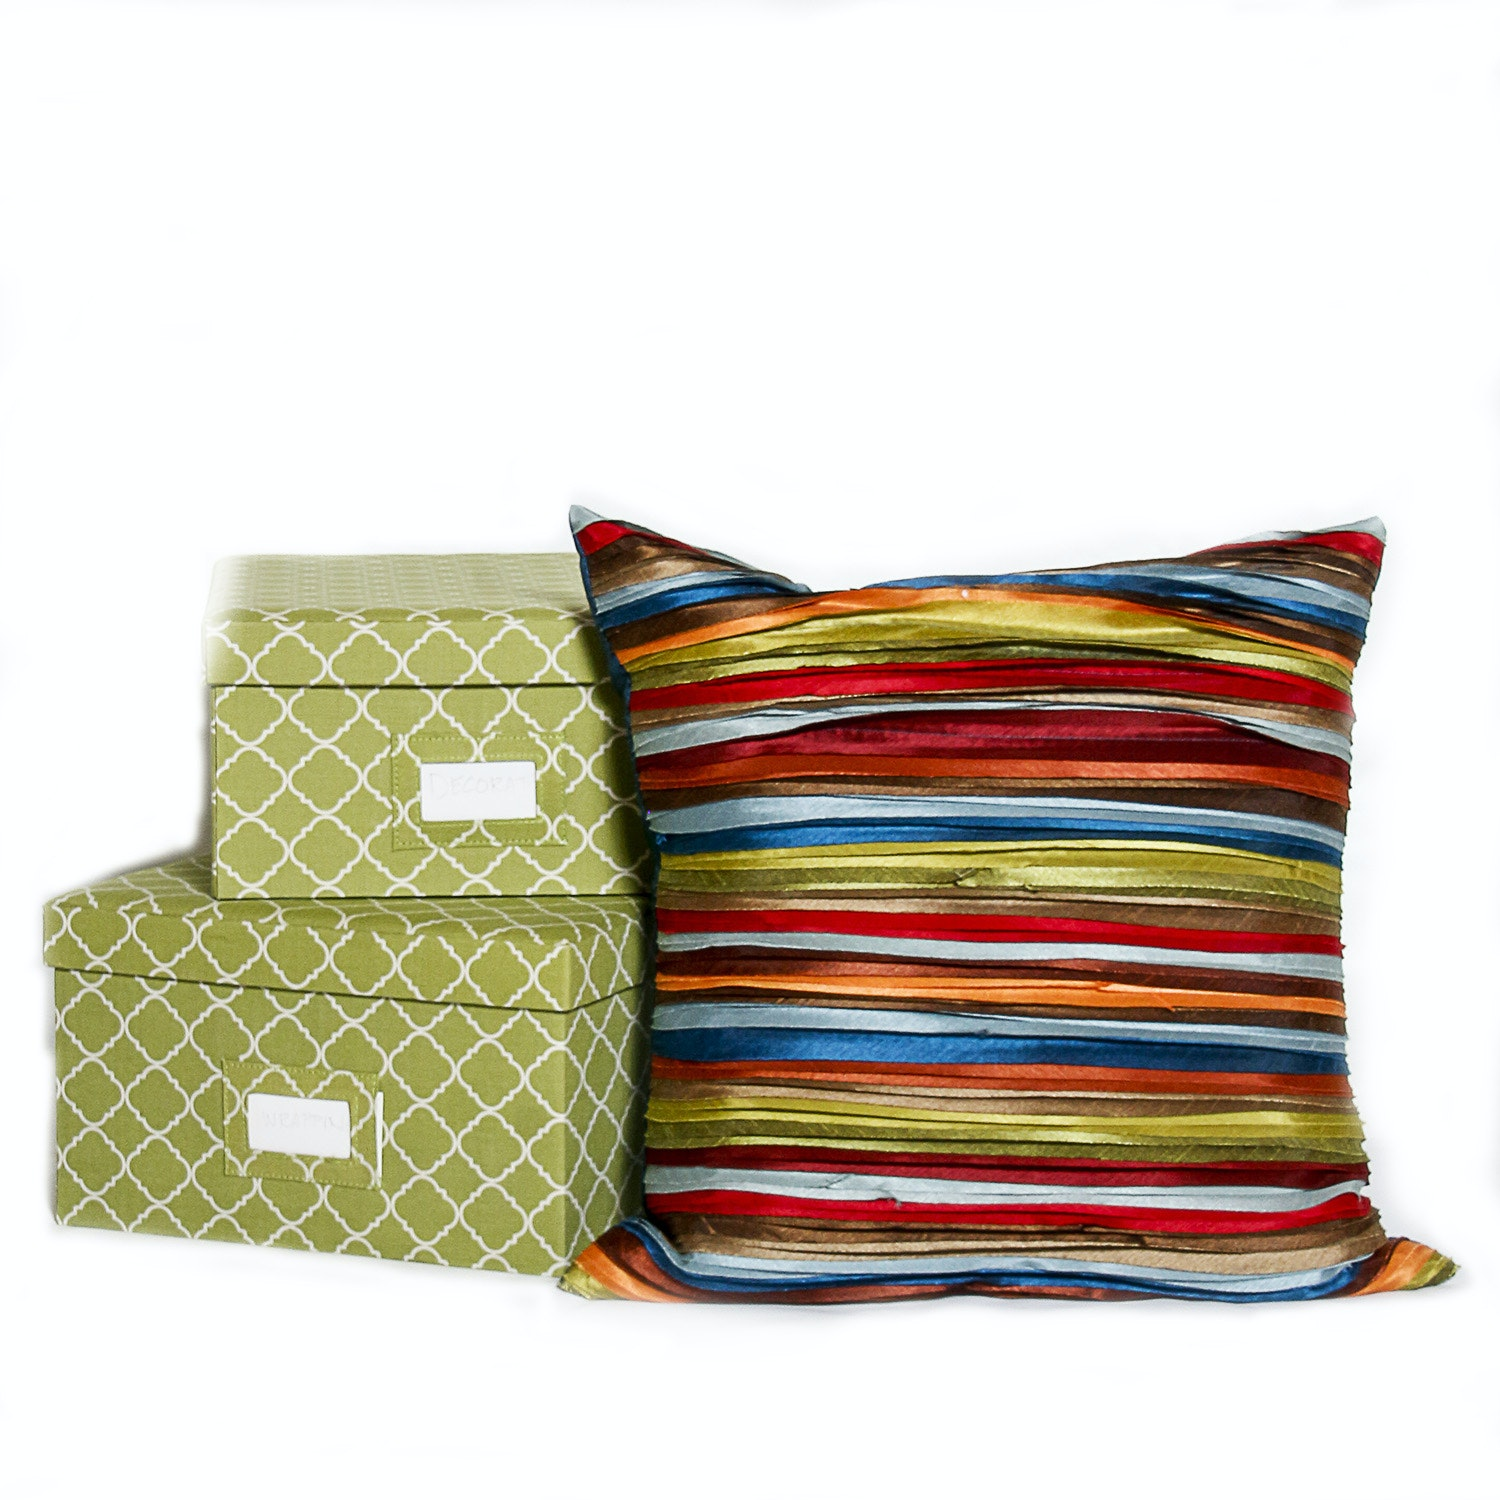 Cloth Storage Boxes With A Decorative Throw Pillow ...